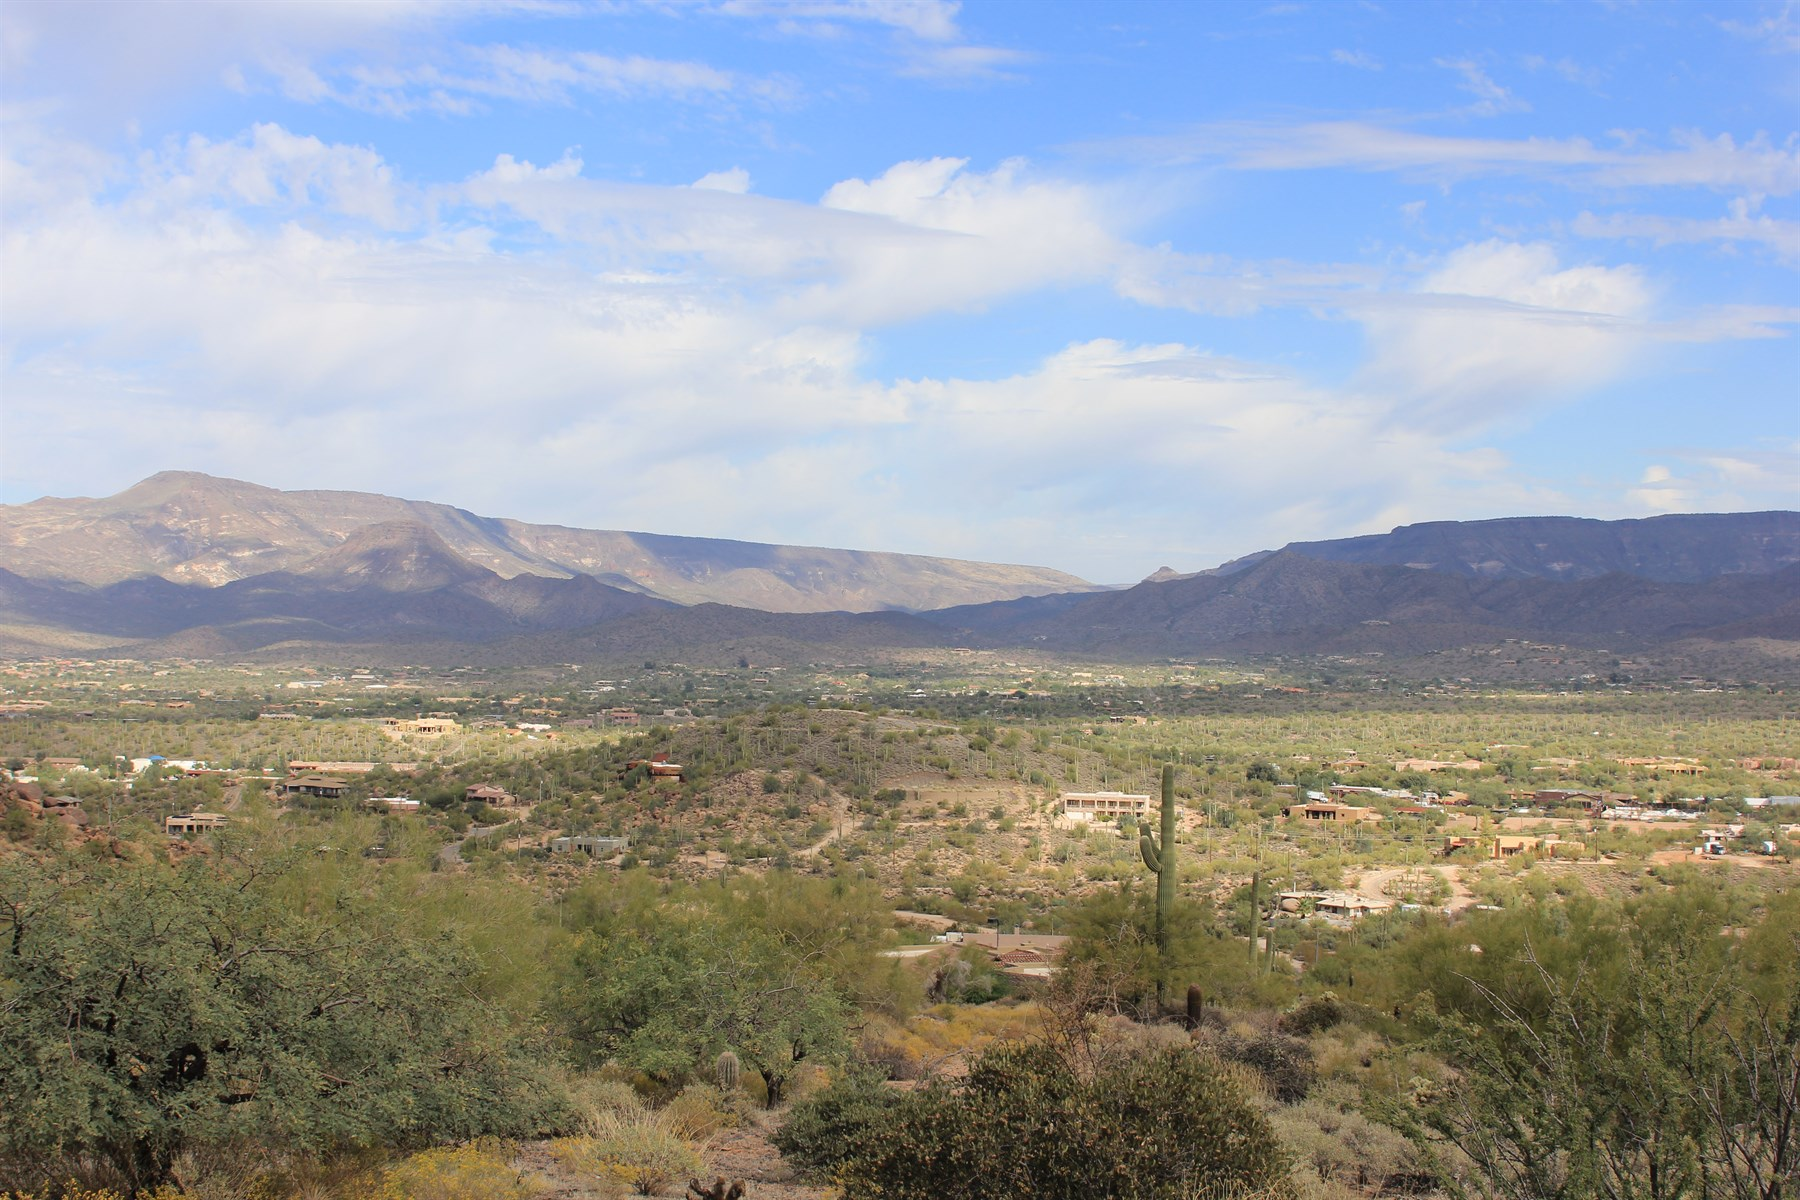 Land for Sale at Enjoy unobstructed views from this rare 4.6 acre parcel. 3700 N NEVER MIND TRL 0 Carefree, Arizona 85377 United States